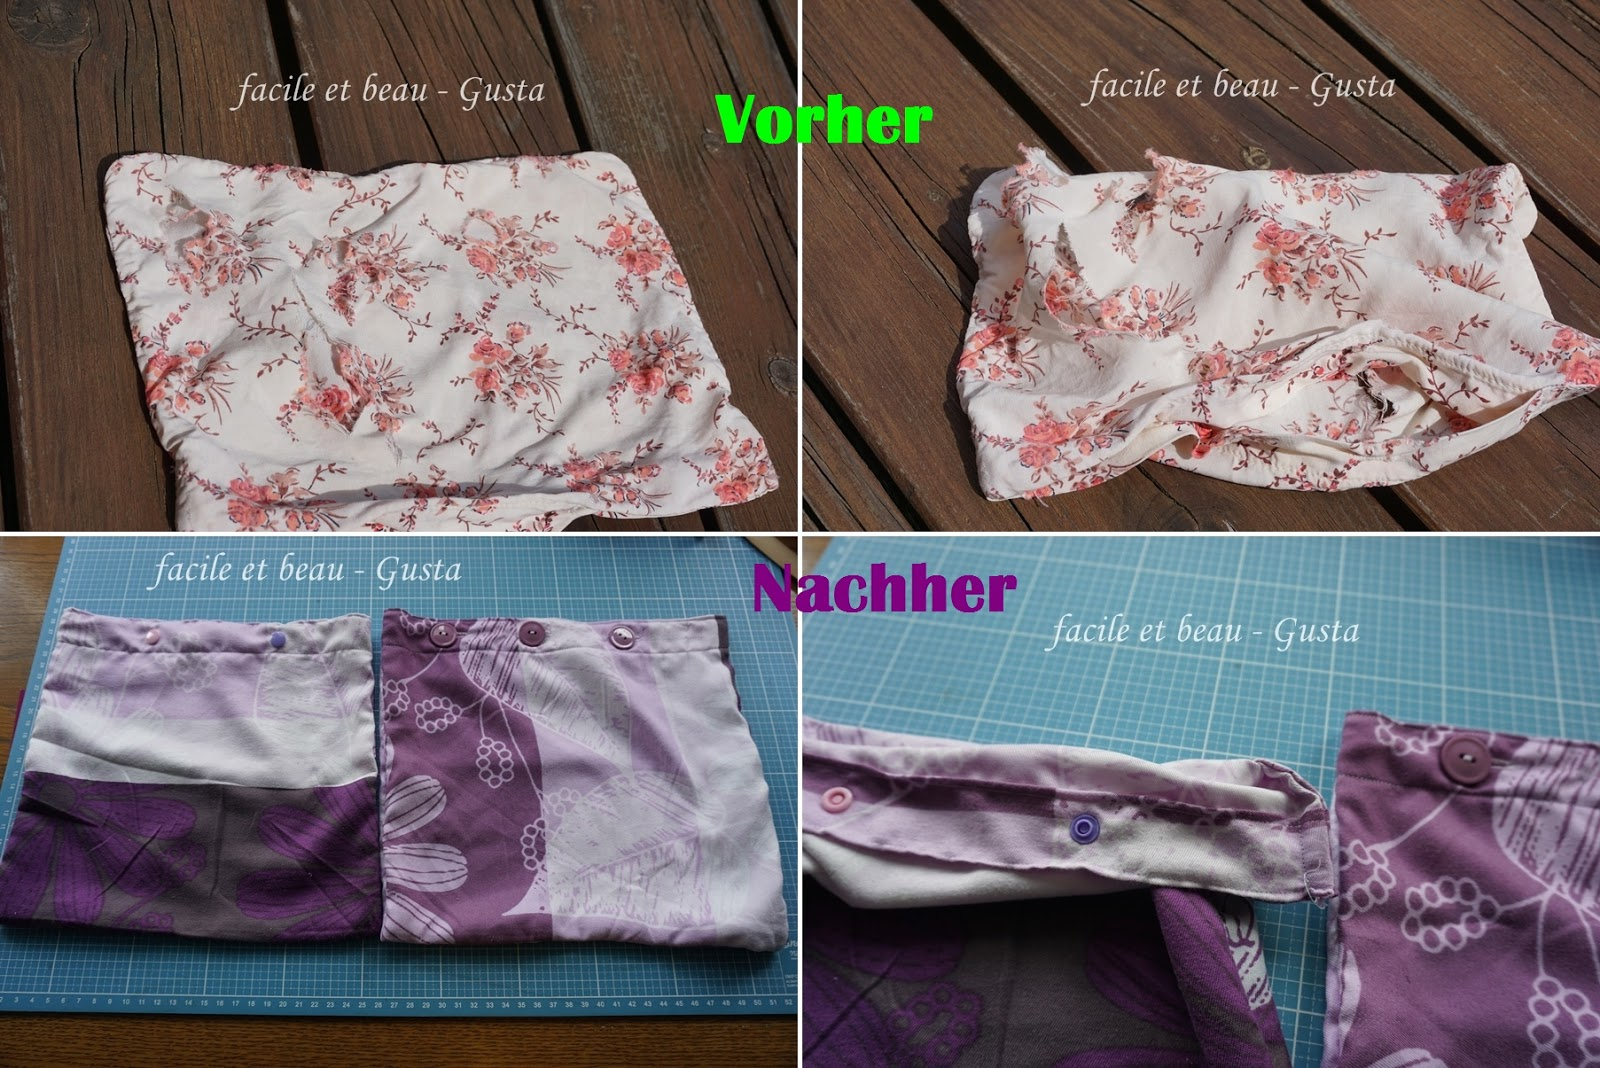 Upcycling Alte Bettwäsche Facile Et Beau Gusta Mini Kissenbezüge Upcycling Linkparty